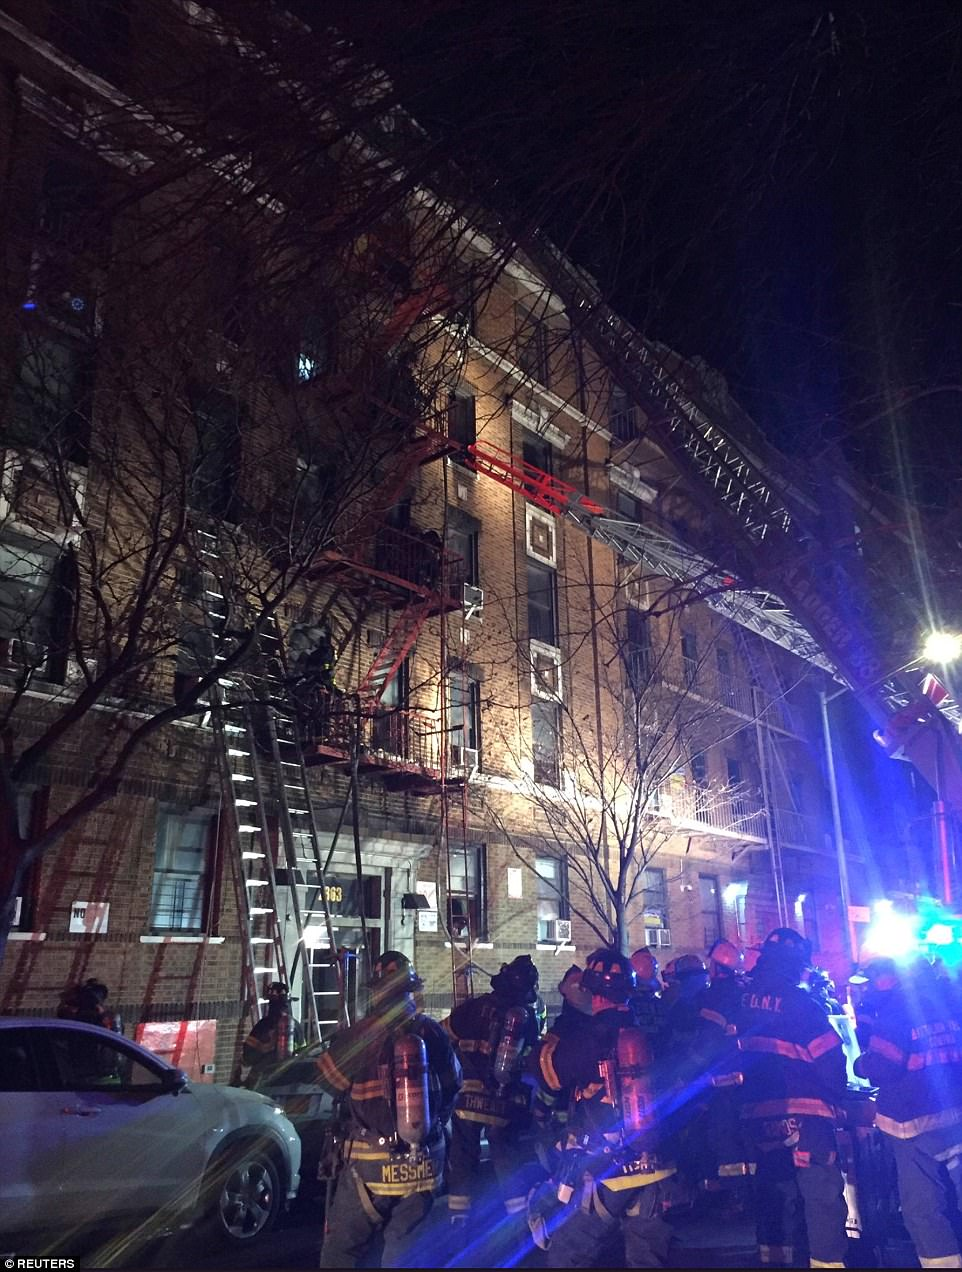 City Department of Buildings records show the building is a walk-up apartment house